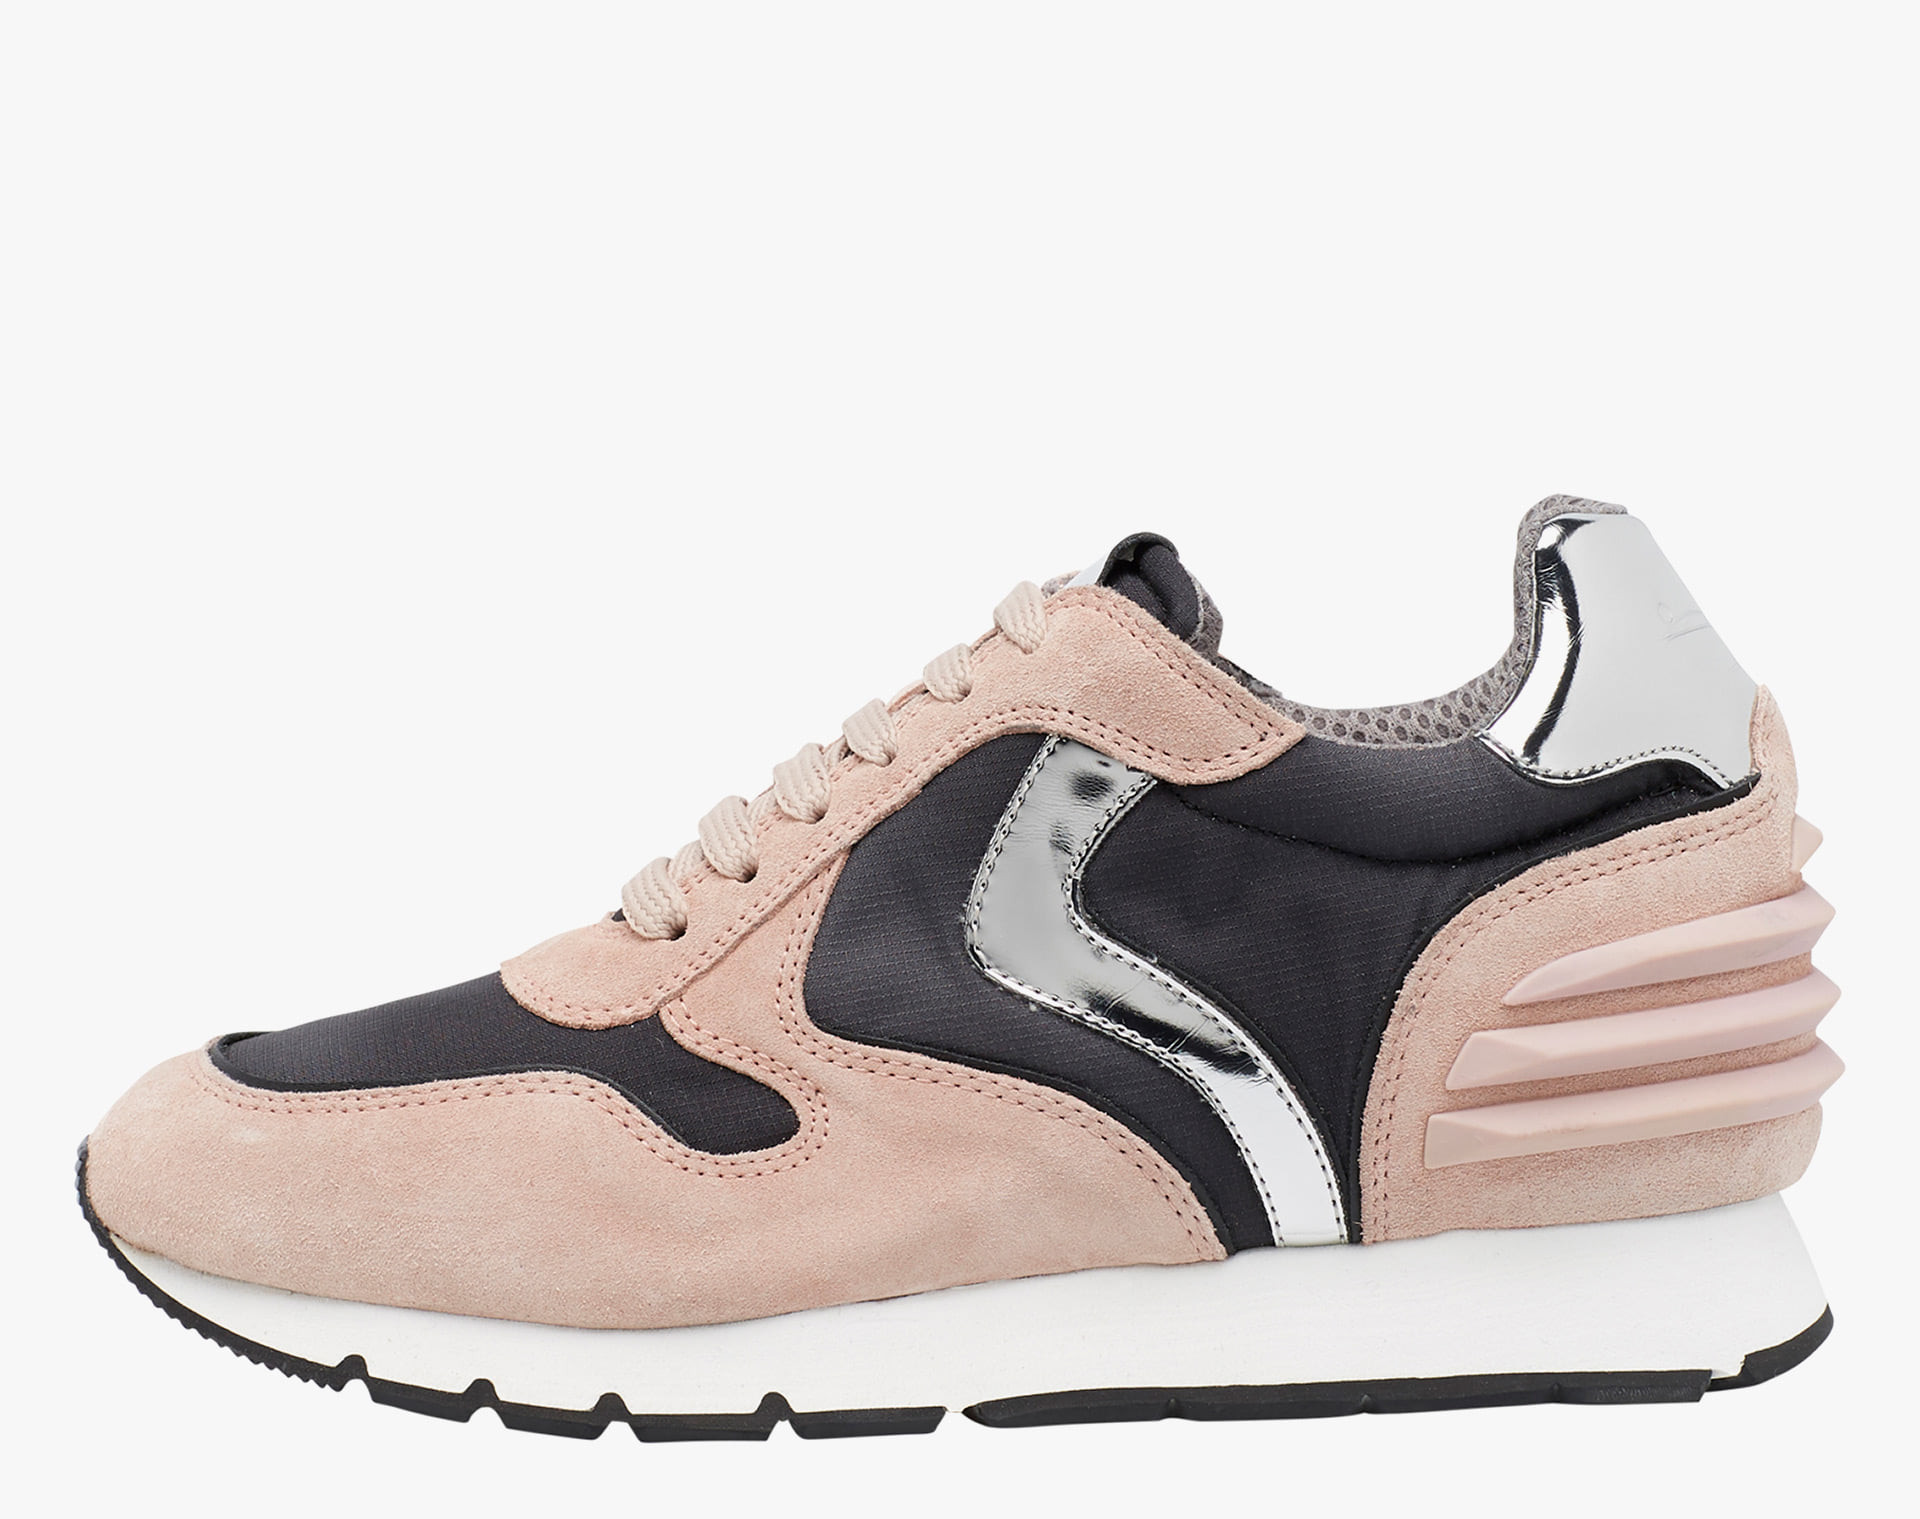 JULIA SLAM POWER - Sneaker in tessuto e pelle stampa pitone - Rosa/Nero